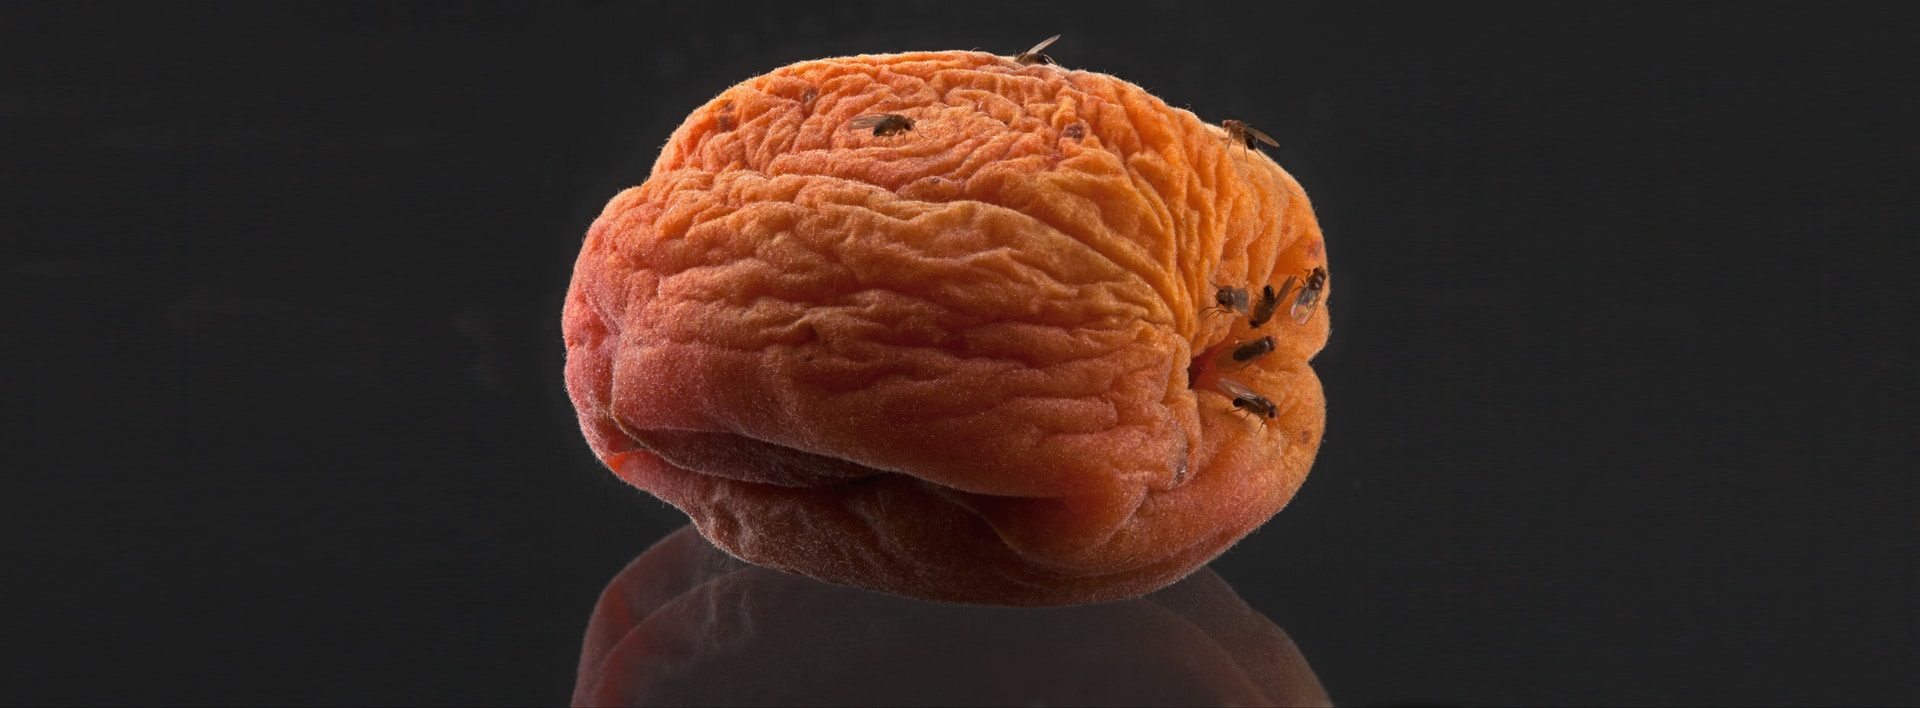 Fruit flies on a rotting wrinkled peach